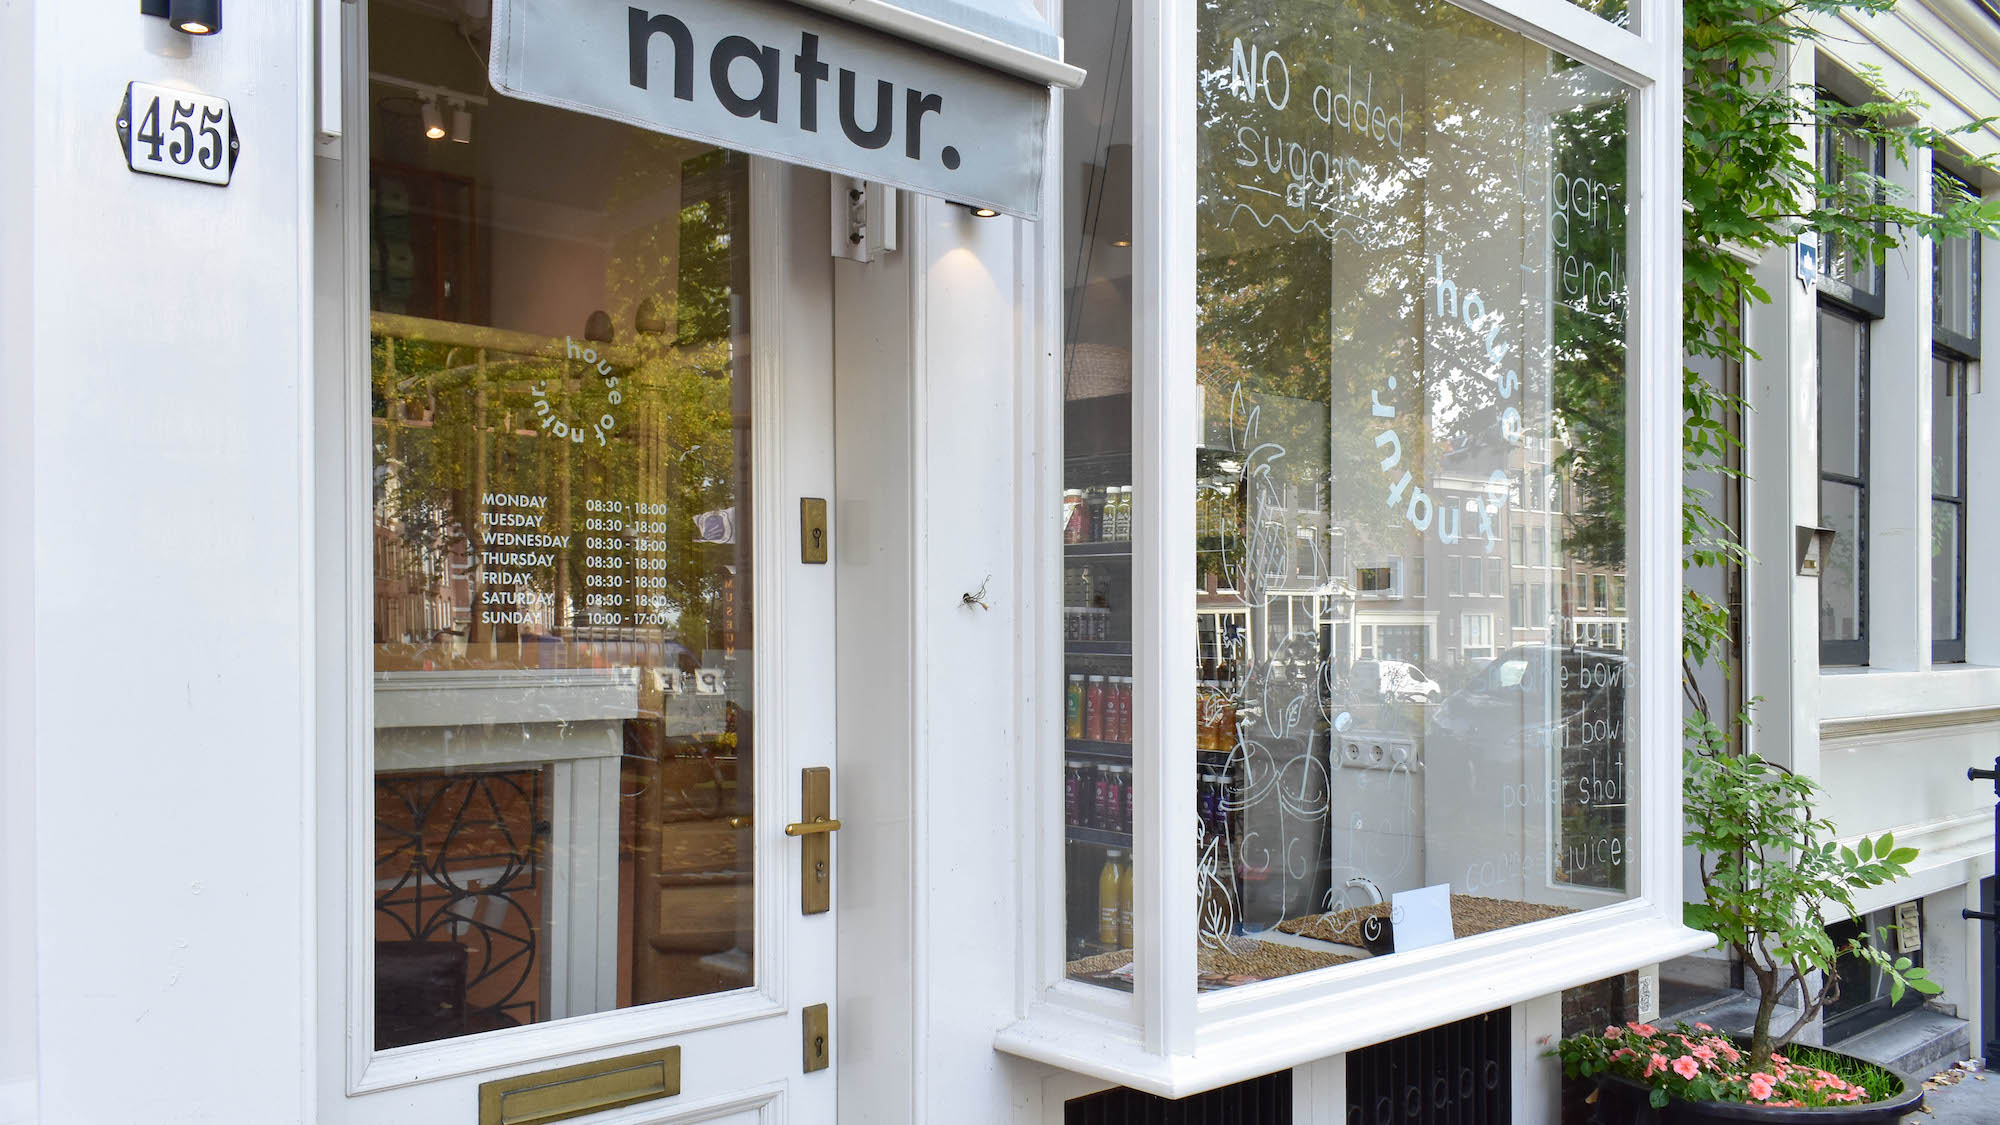 House of Natur.